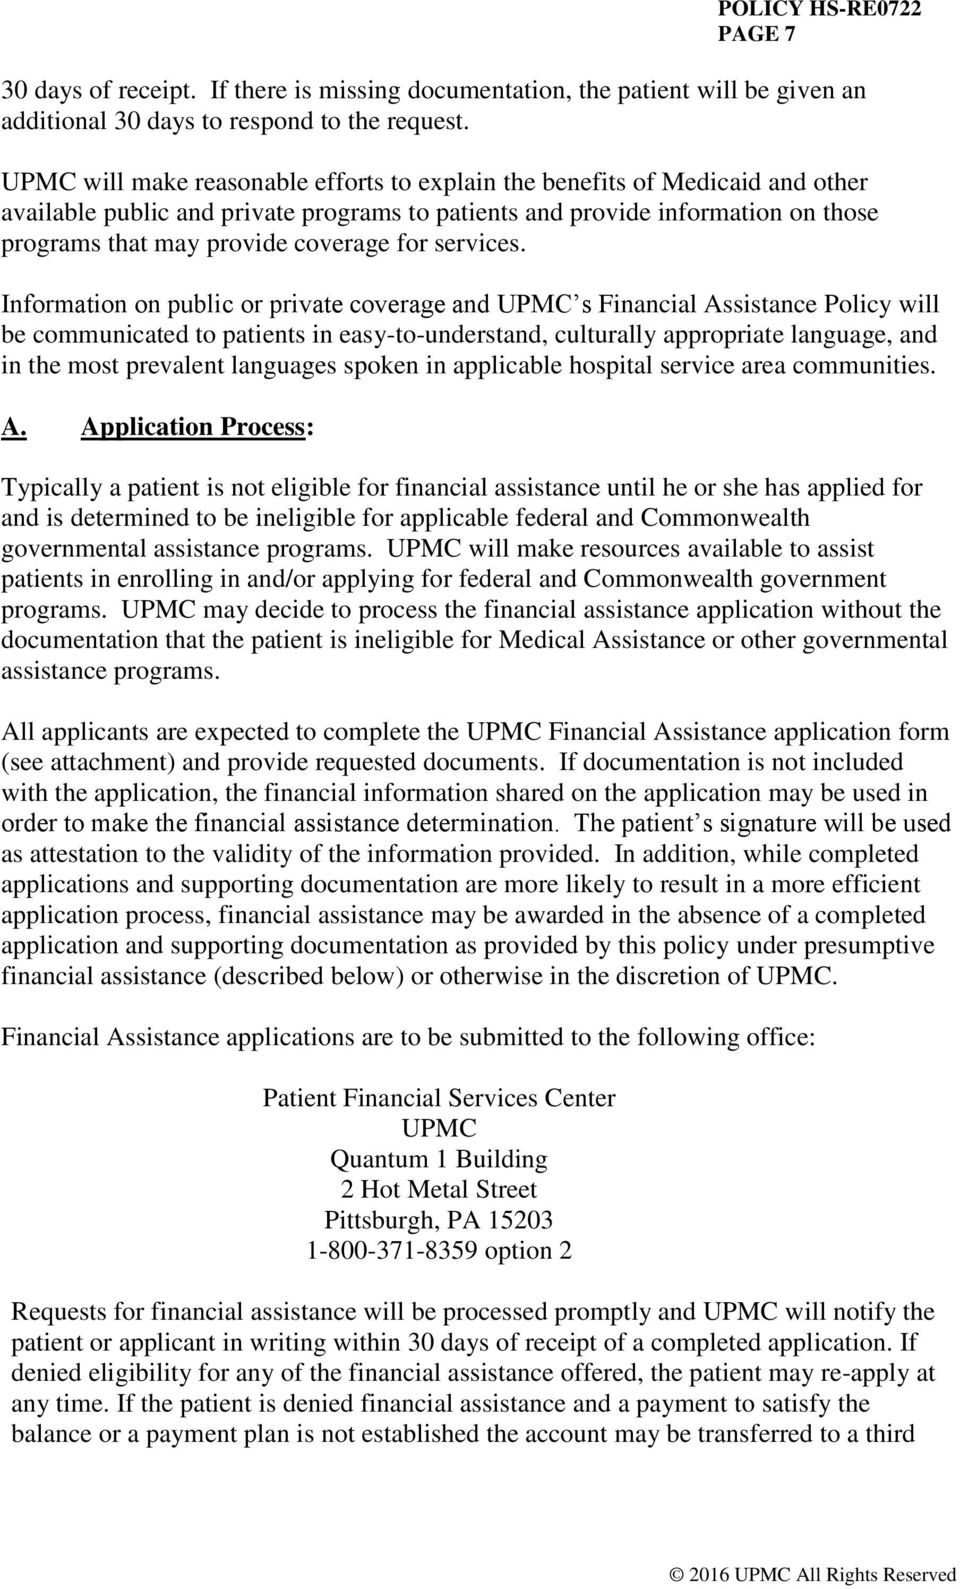 UPMC POLICY AND PROCEDURE MANUAL - PDF